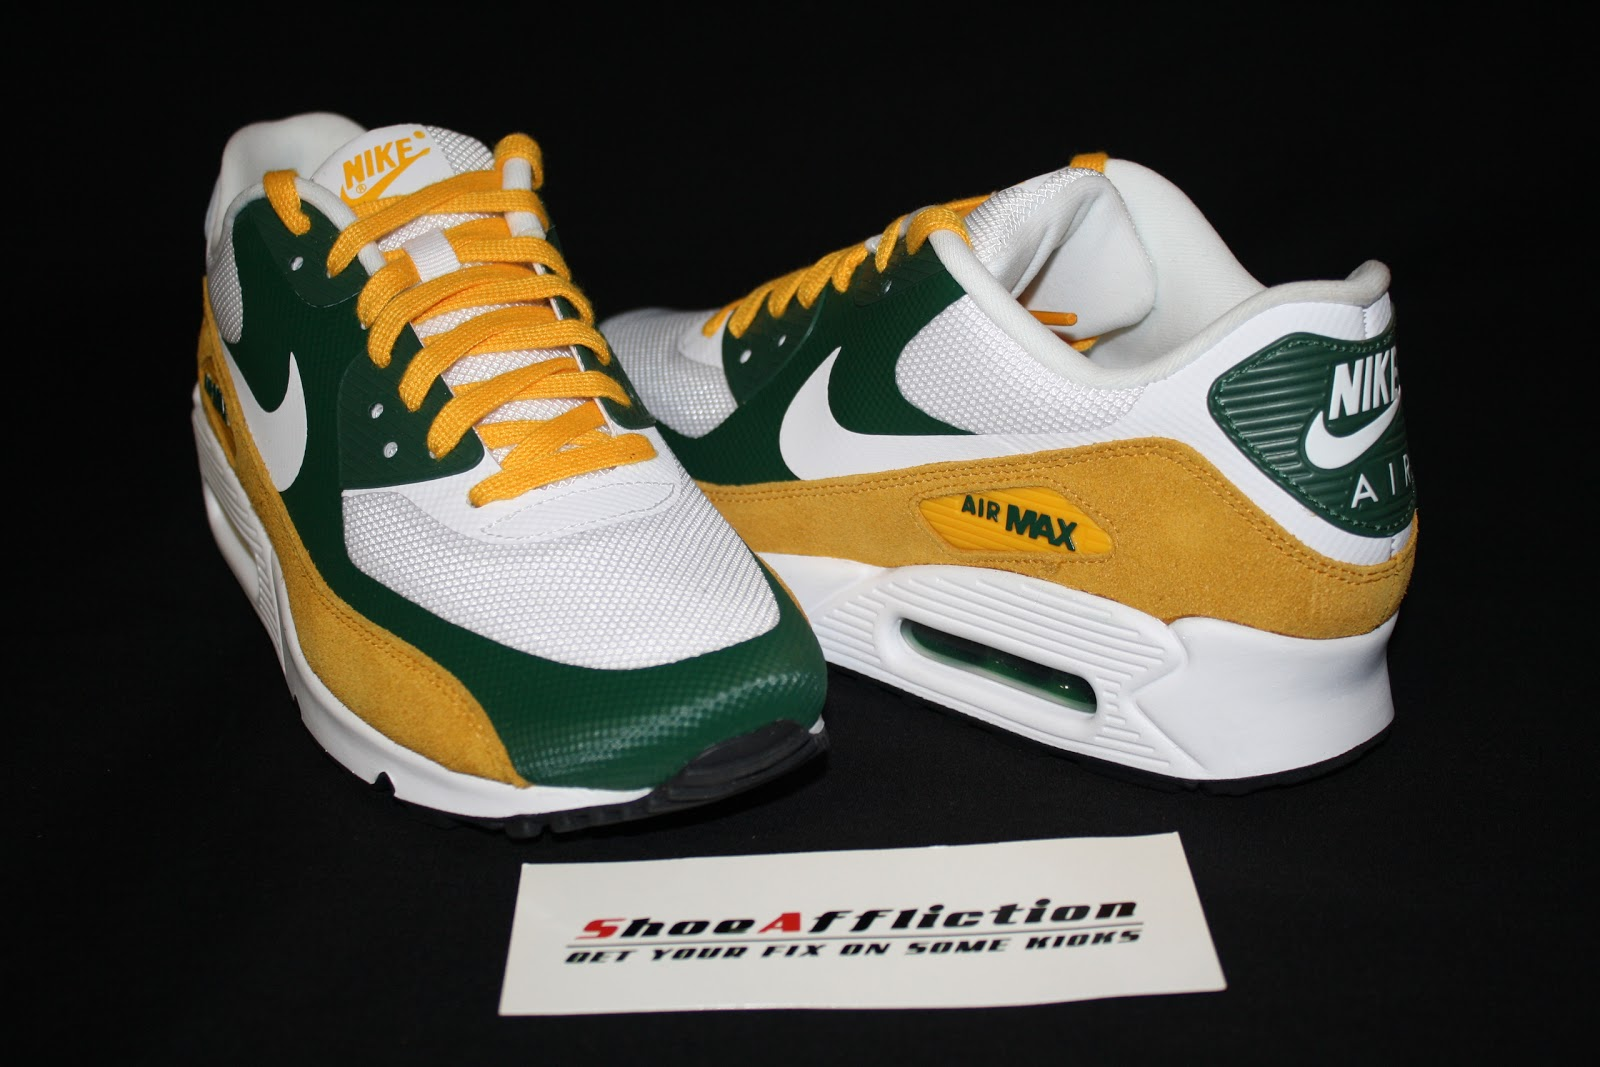 a6f992bbdc The next sneaker from the Nike NFL Draft Day pack is the Greenbay Packers  Air Max 90 Premium Hyperfuse. The sneaker features the traditional Greenbay  Packer ...